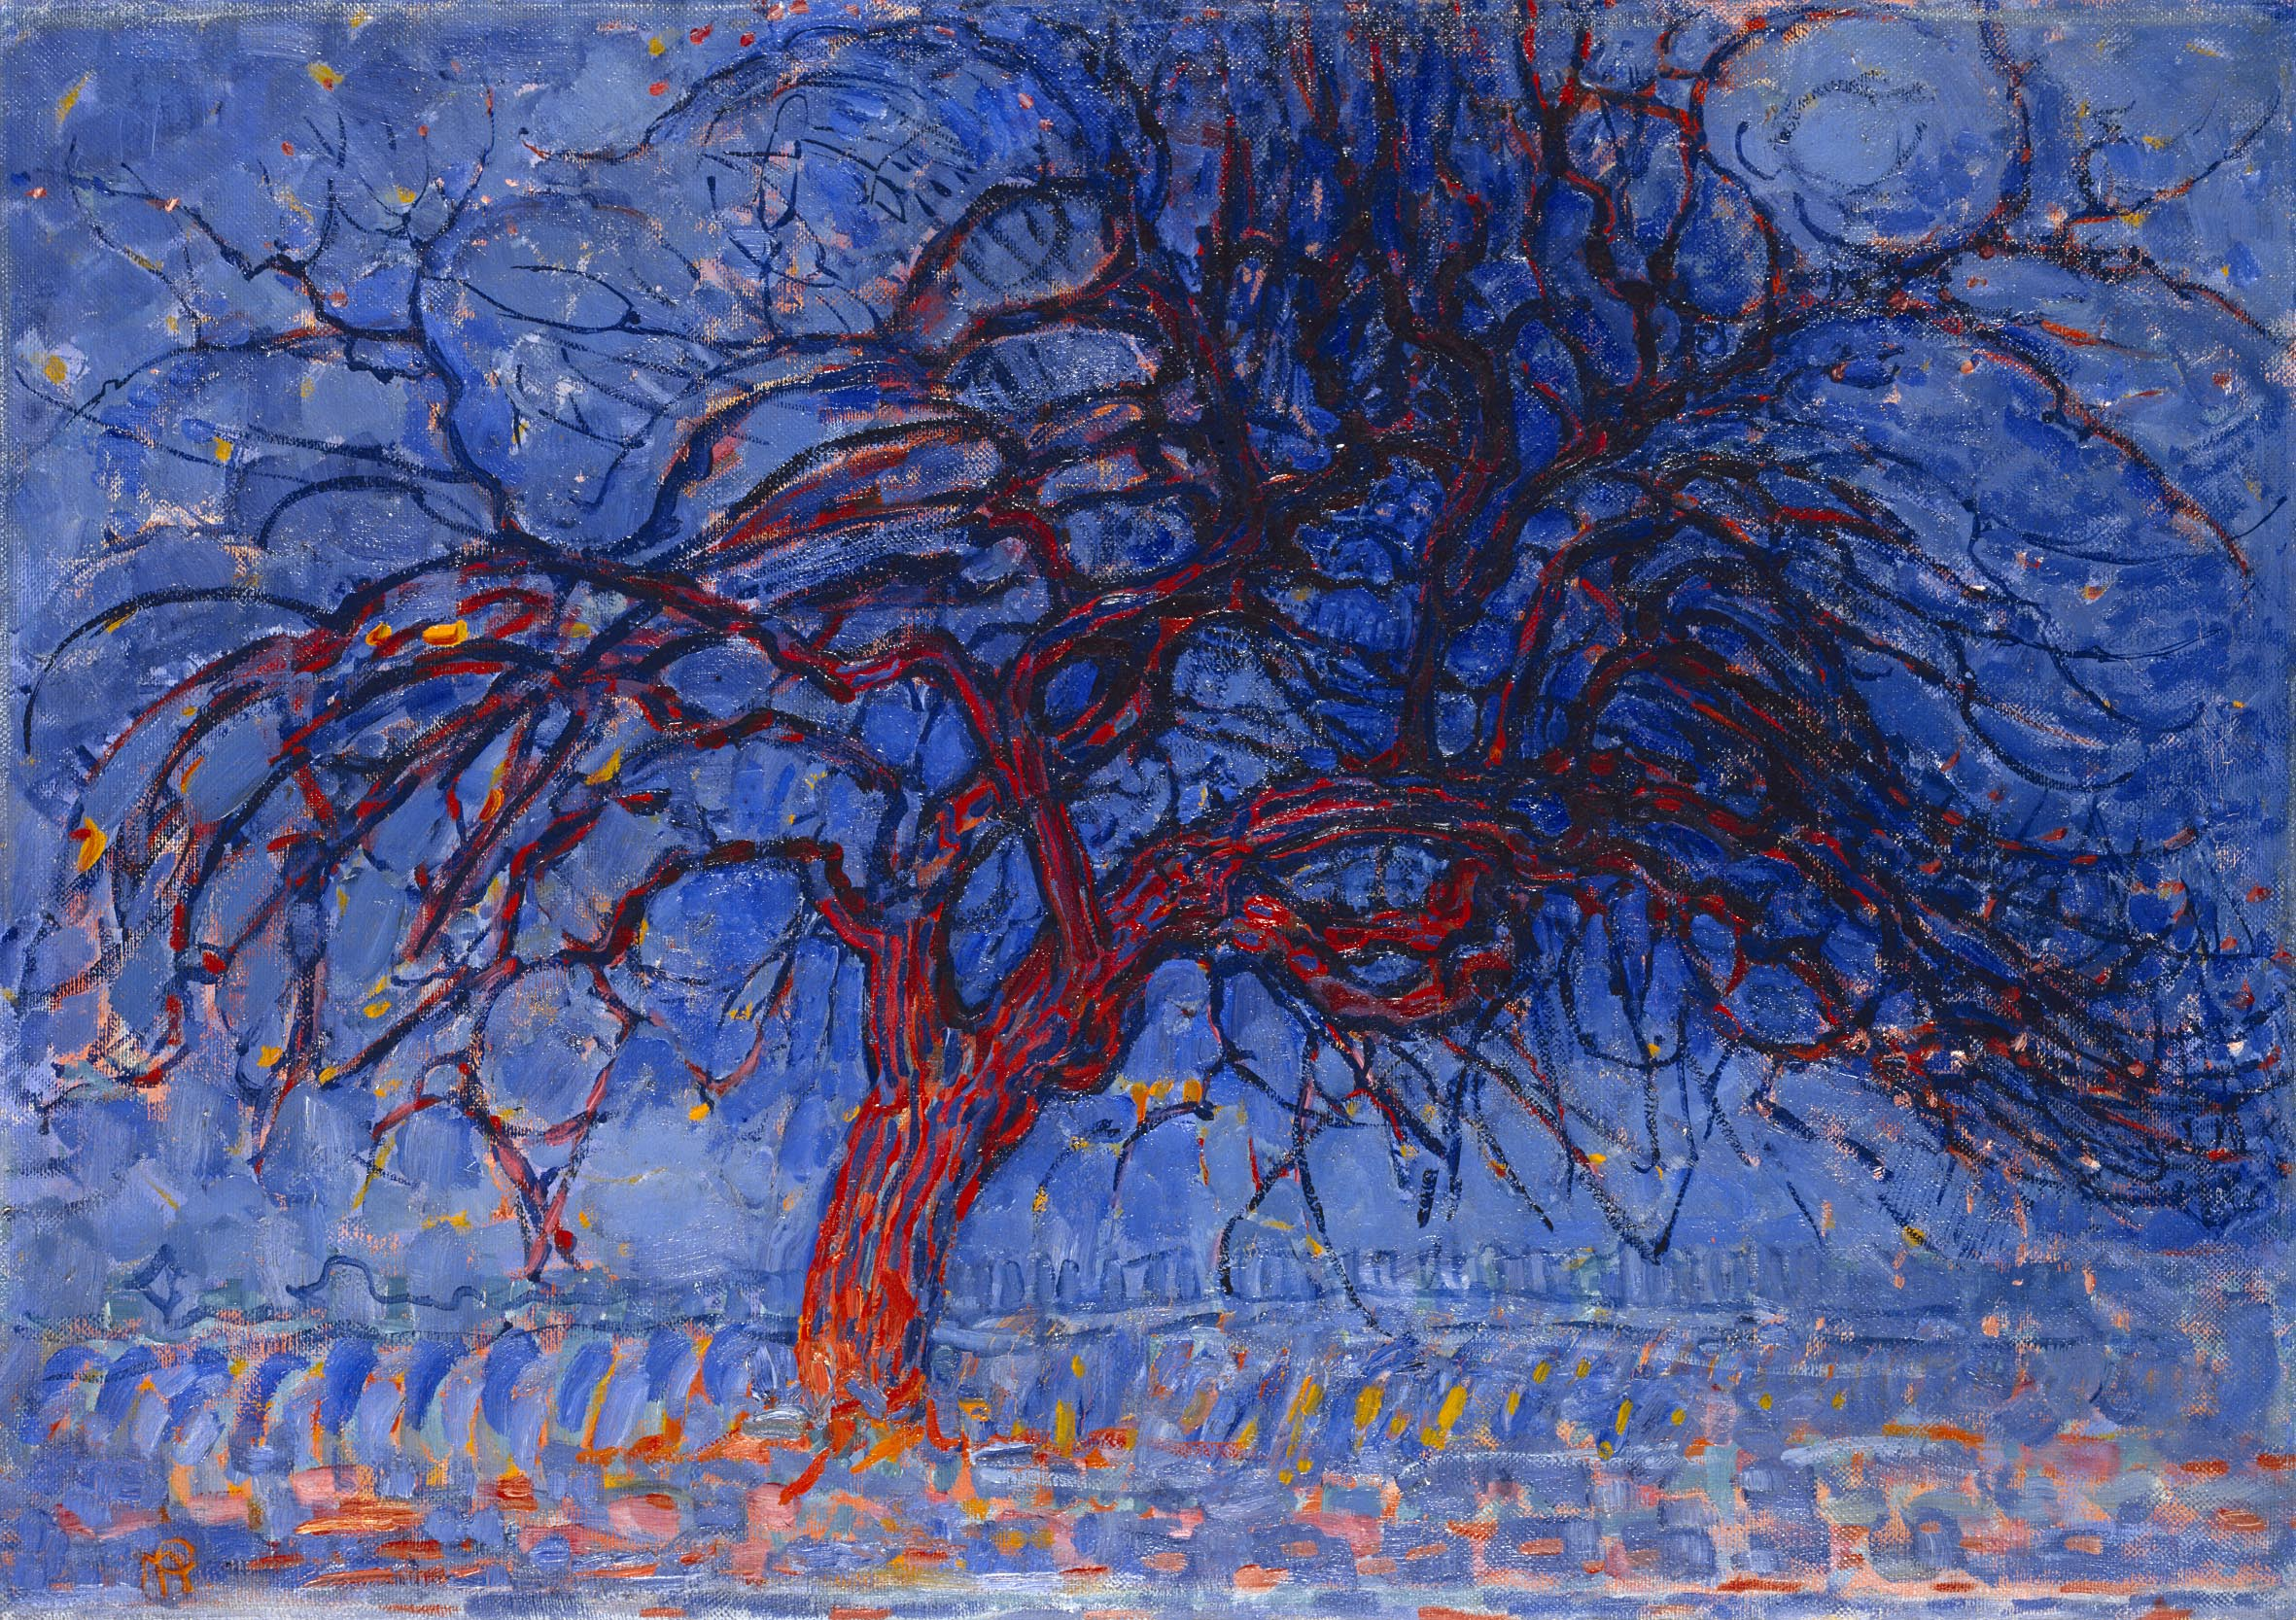 file piet mondrian 1908 10 evening red tree avond de rode boom oil on canvas 70 x 99 cm. Black Bedroom Furniture Sets. Home Design Ideas